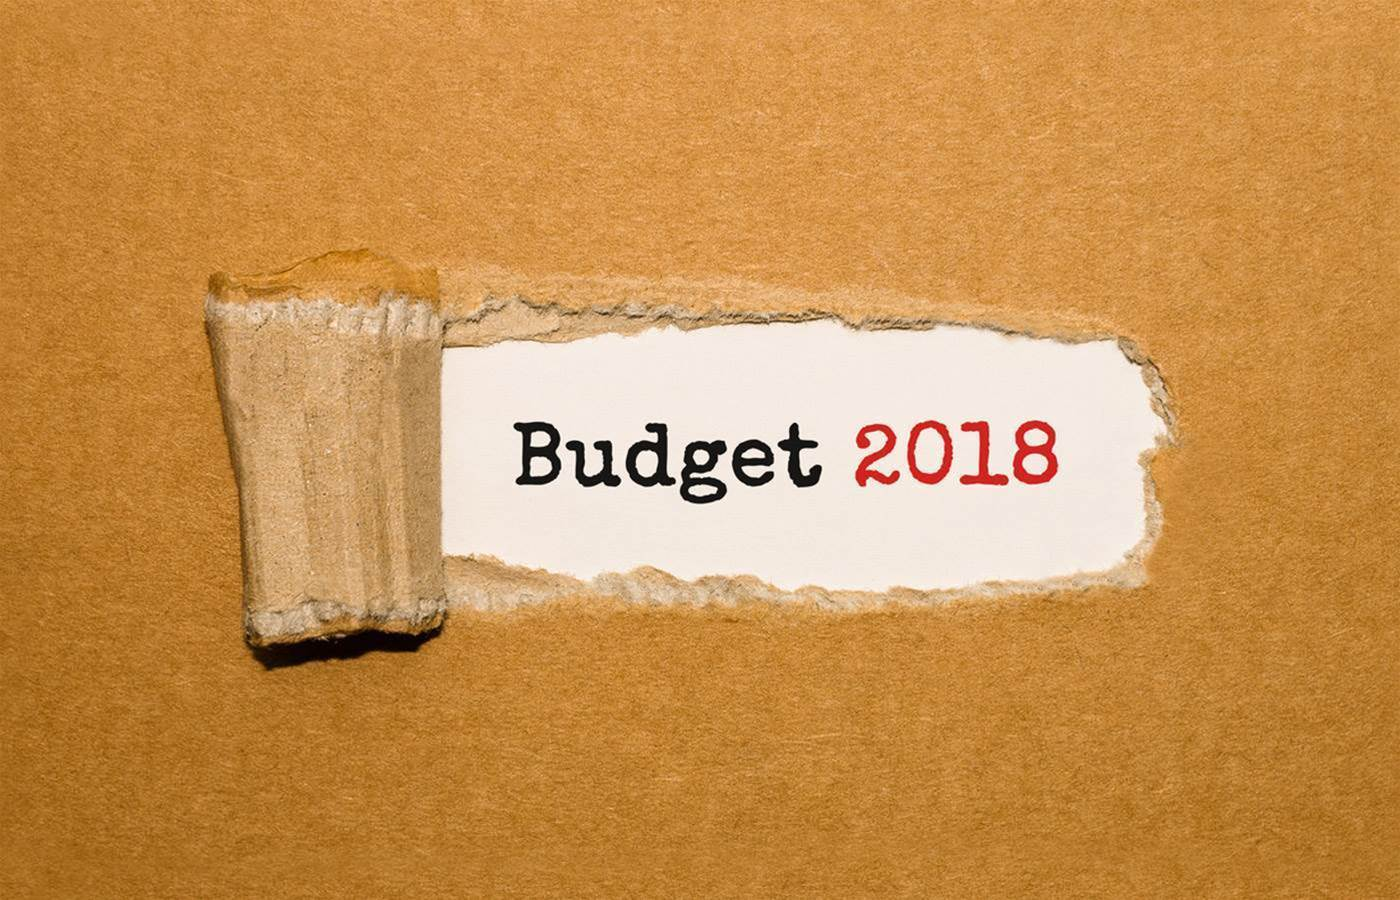 Budget flags $2.4 billion in tech spending, ICT projects